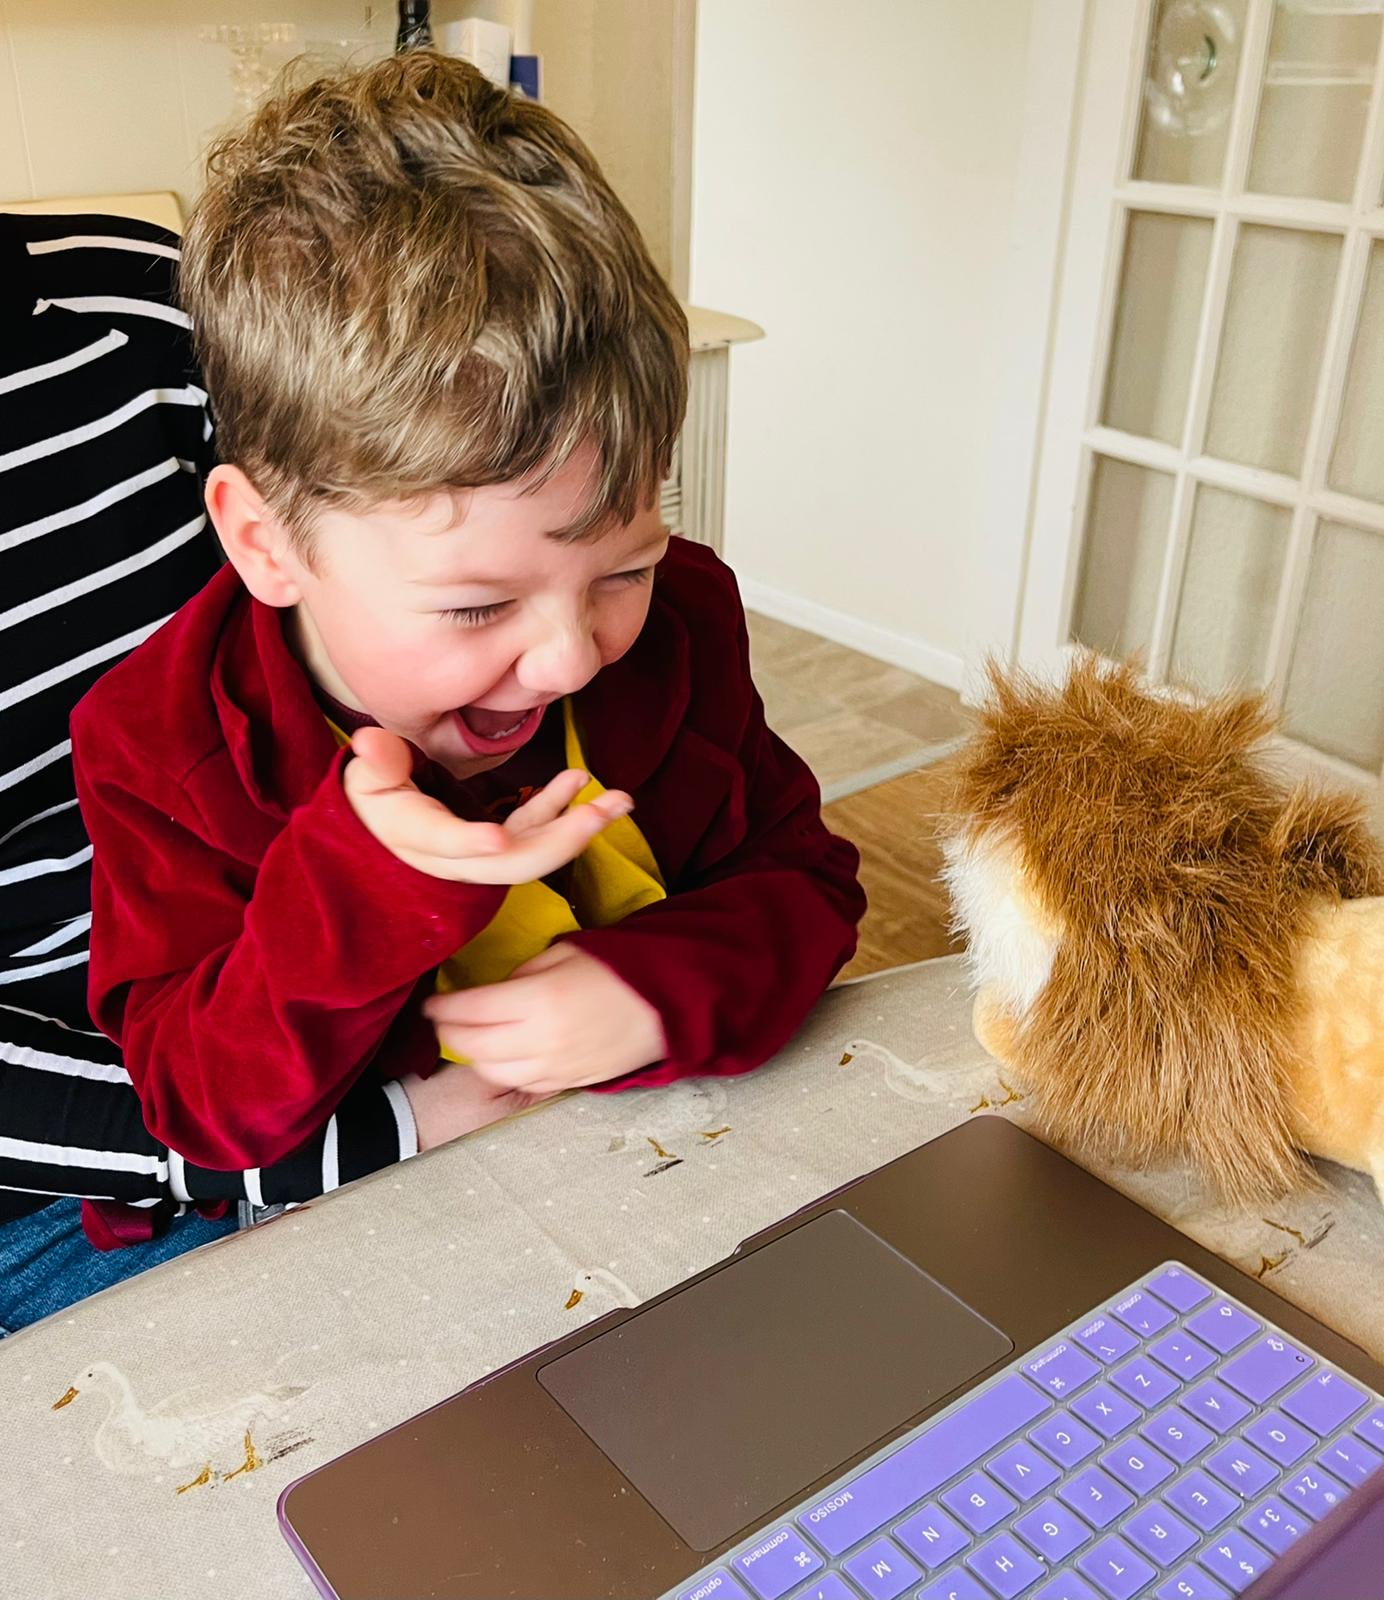 Online Entertainment for 5 year old